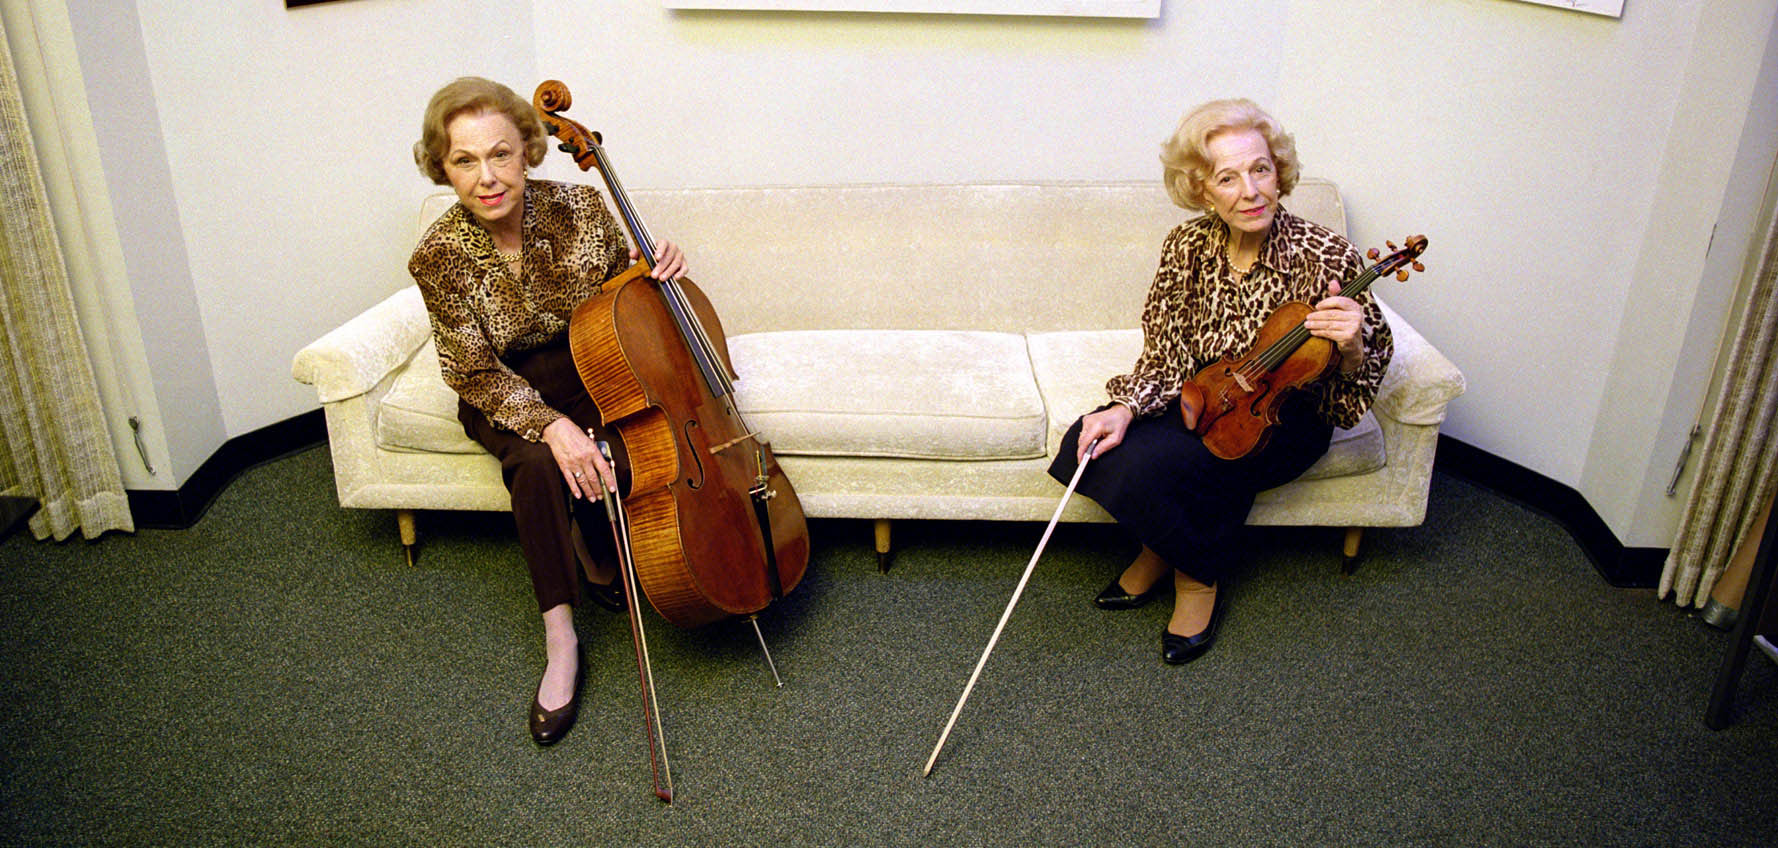 Alice Schoenfeld (right) and her sister, Eleonore Schoenfeld, in 2003.